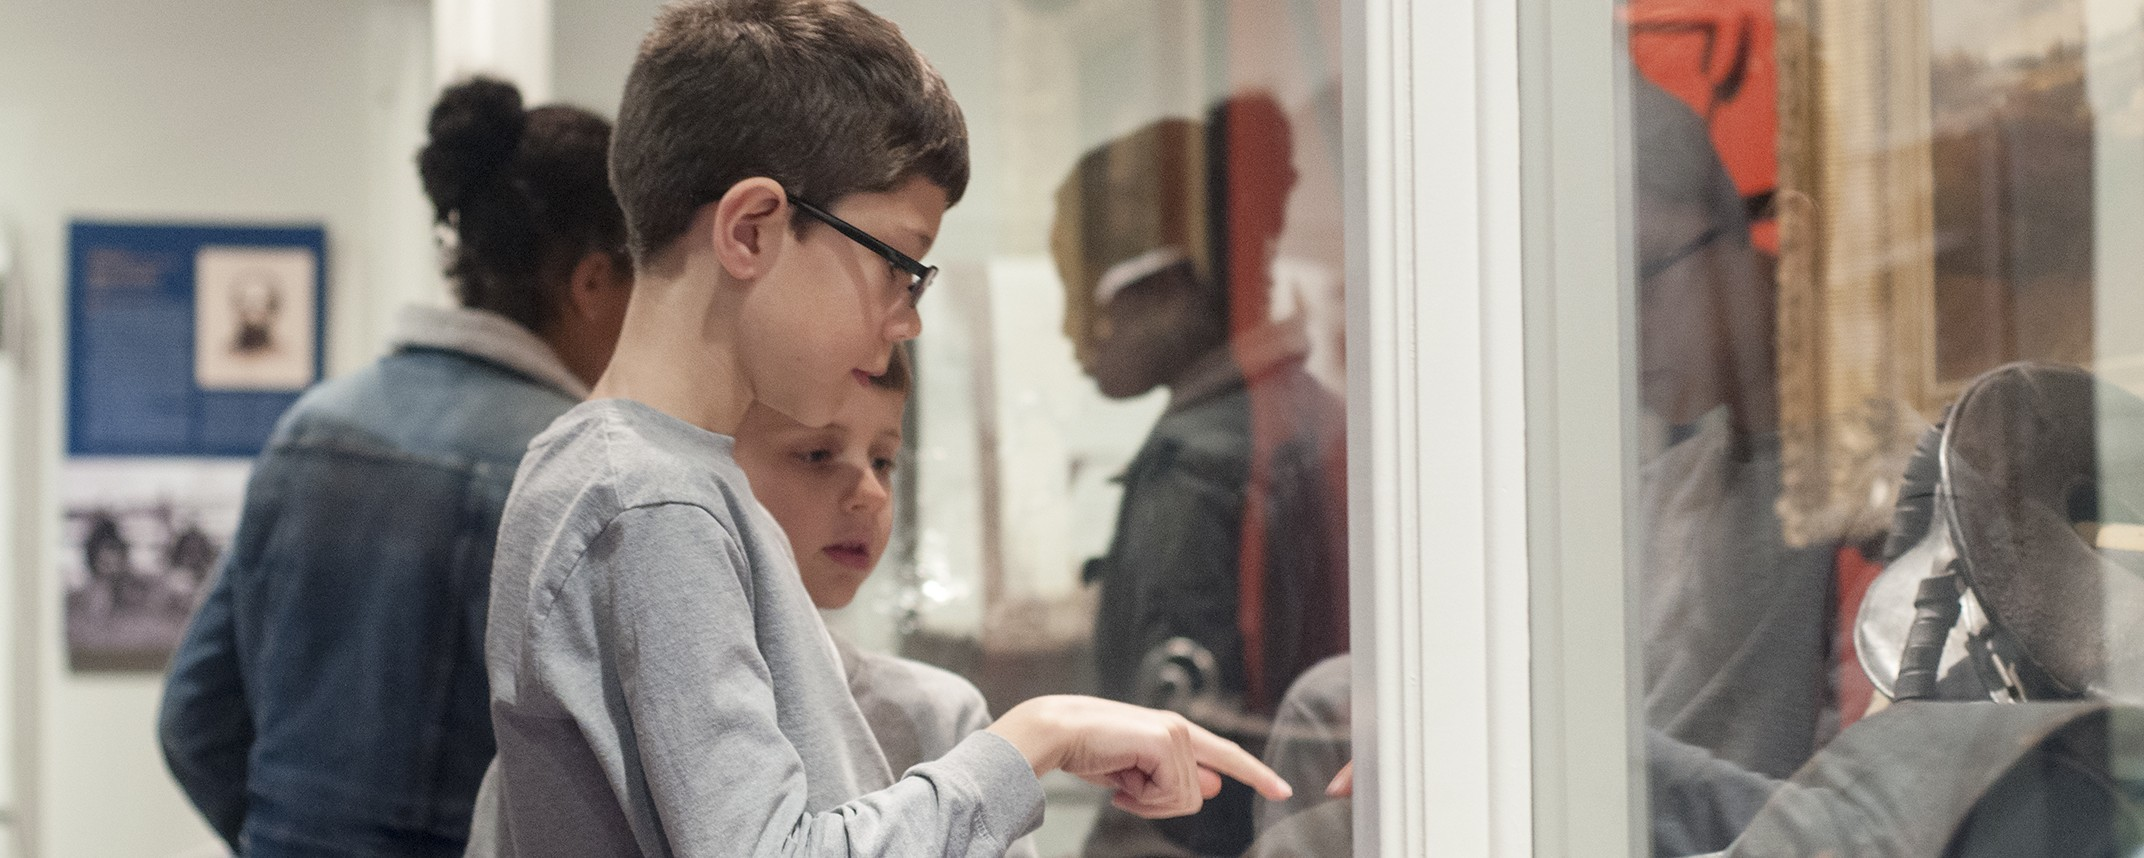 children looking at exhibit